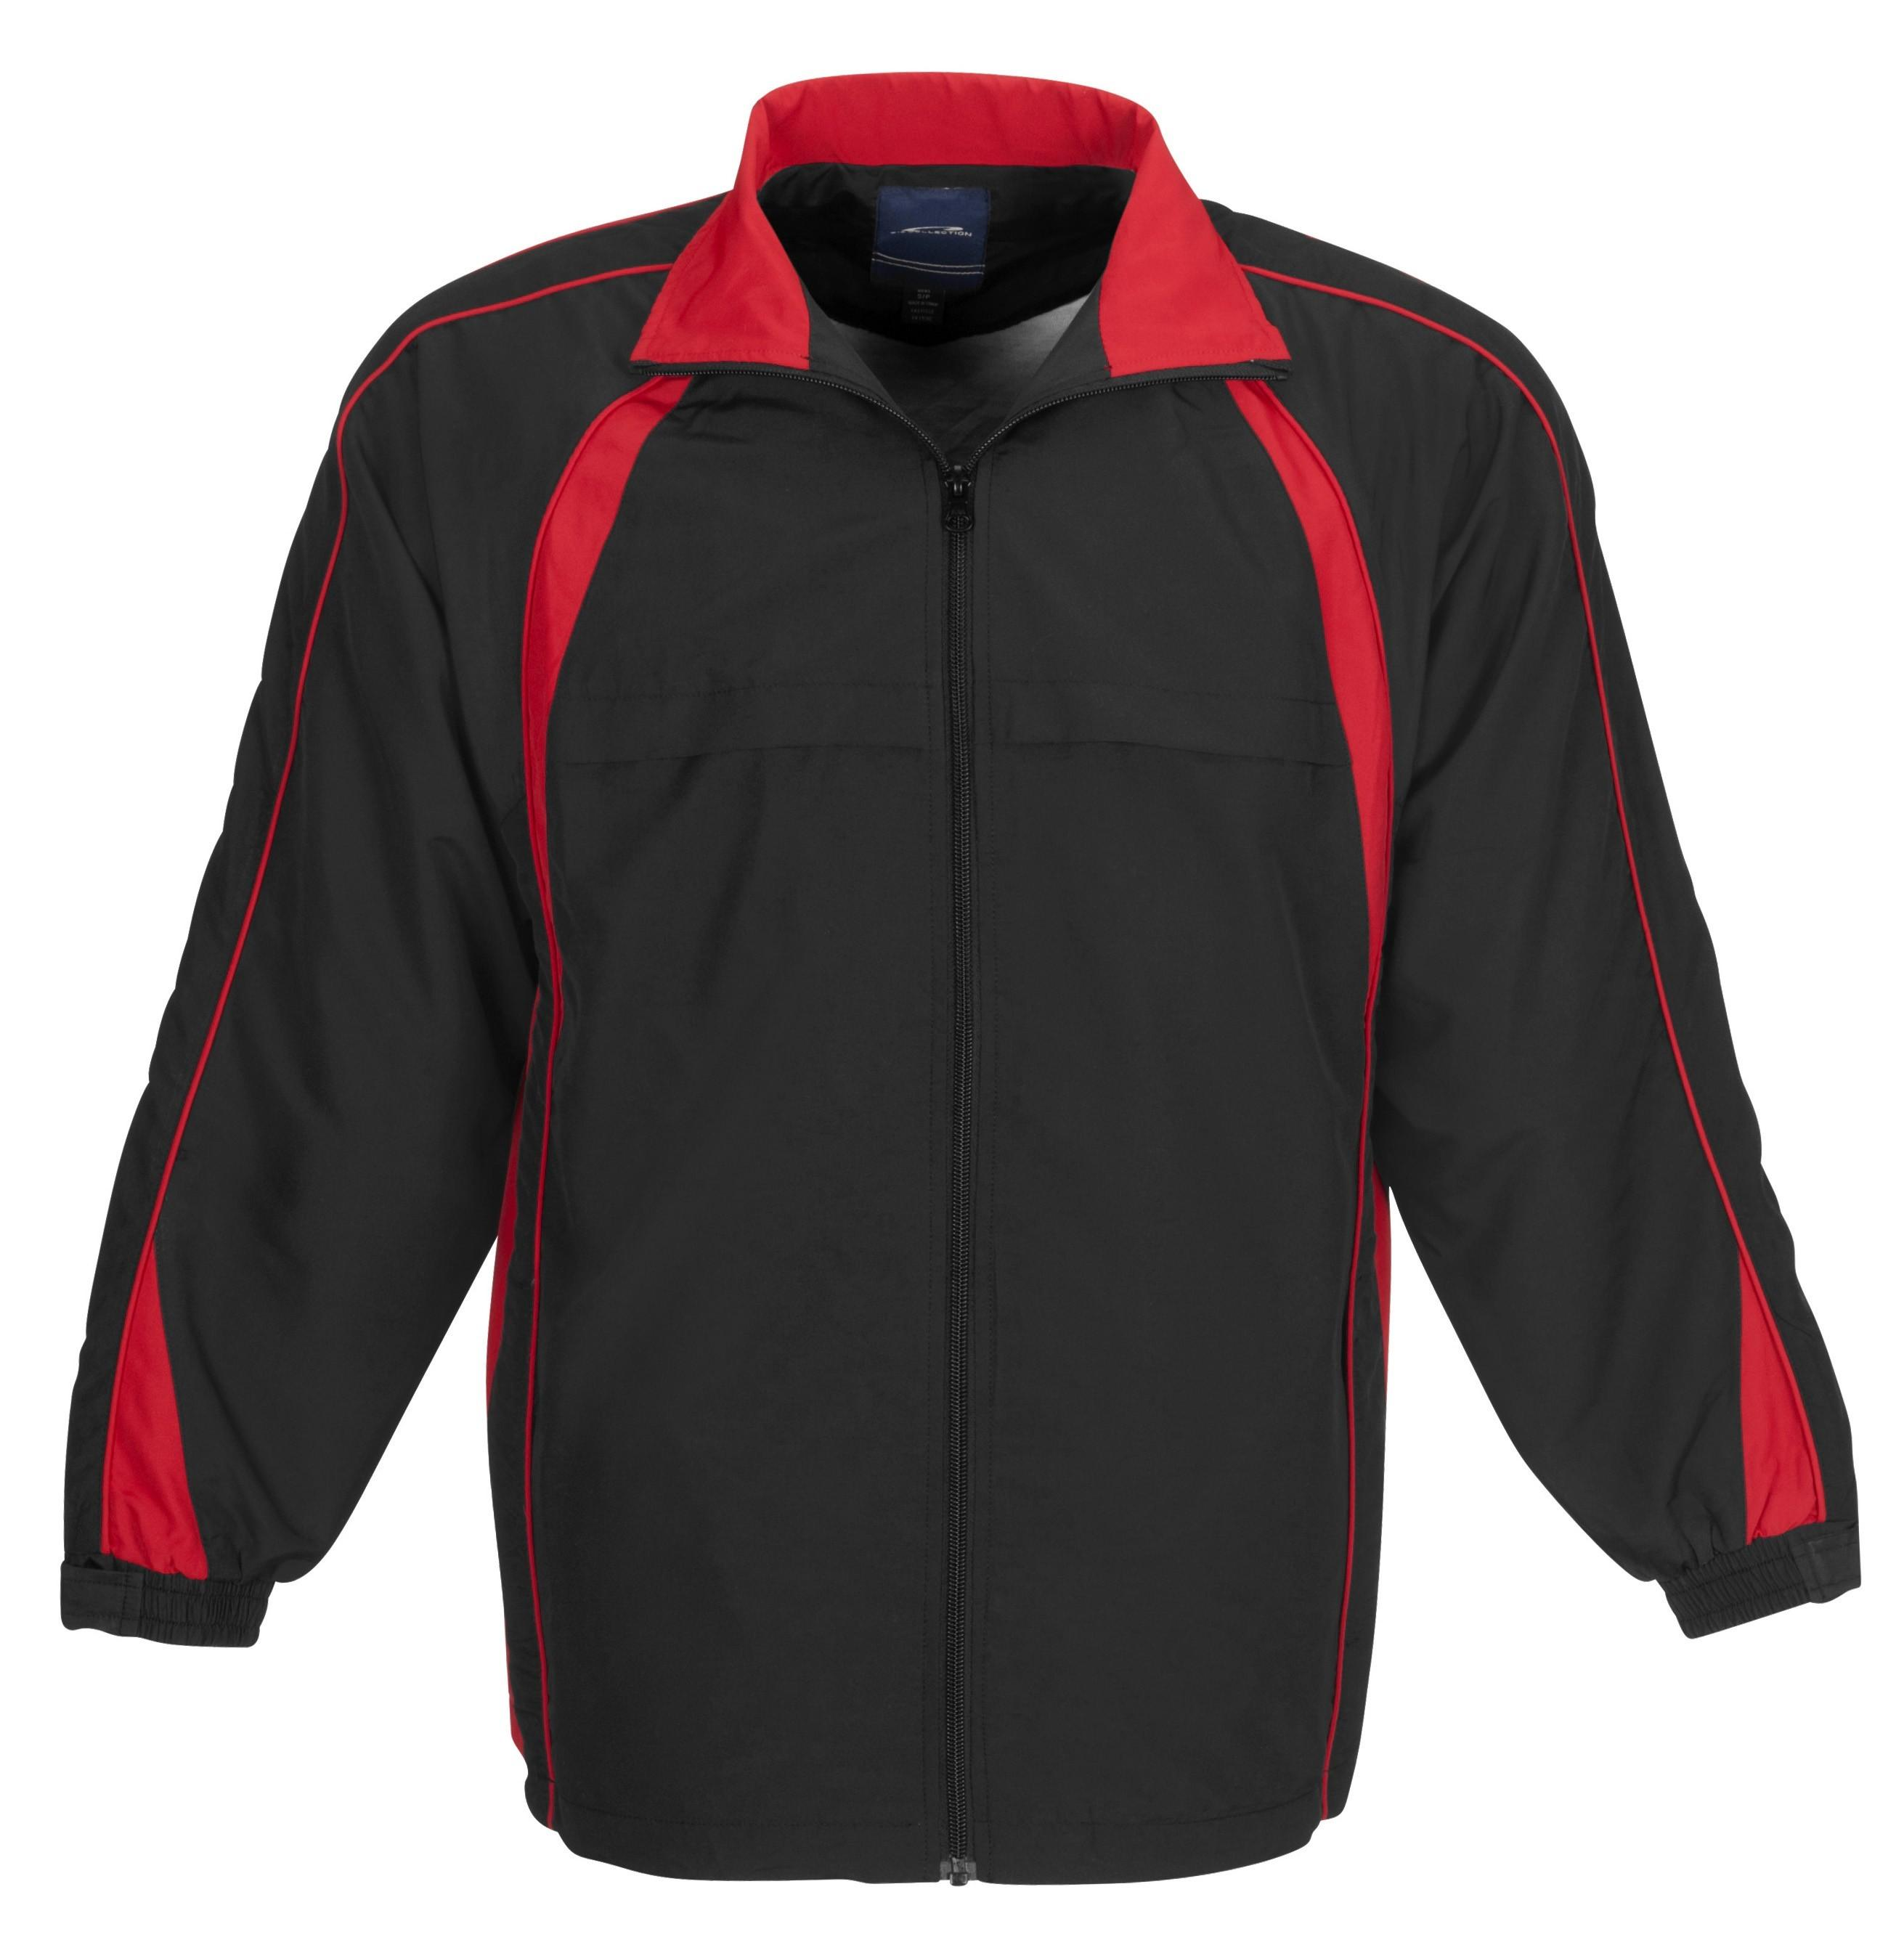 Splice Unisex Track Top - Blr Only